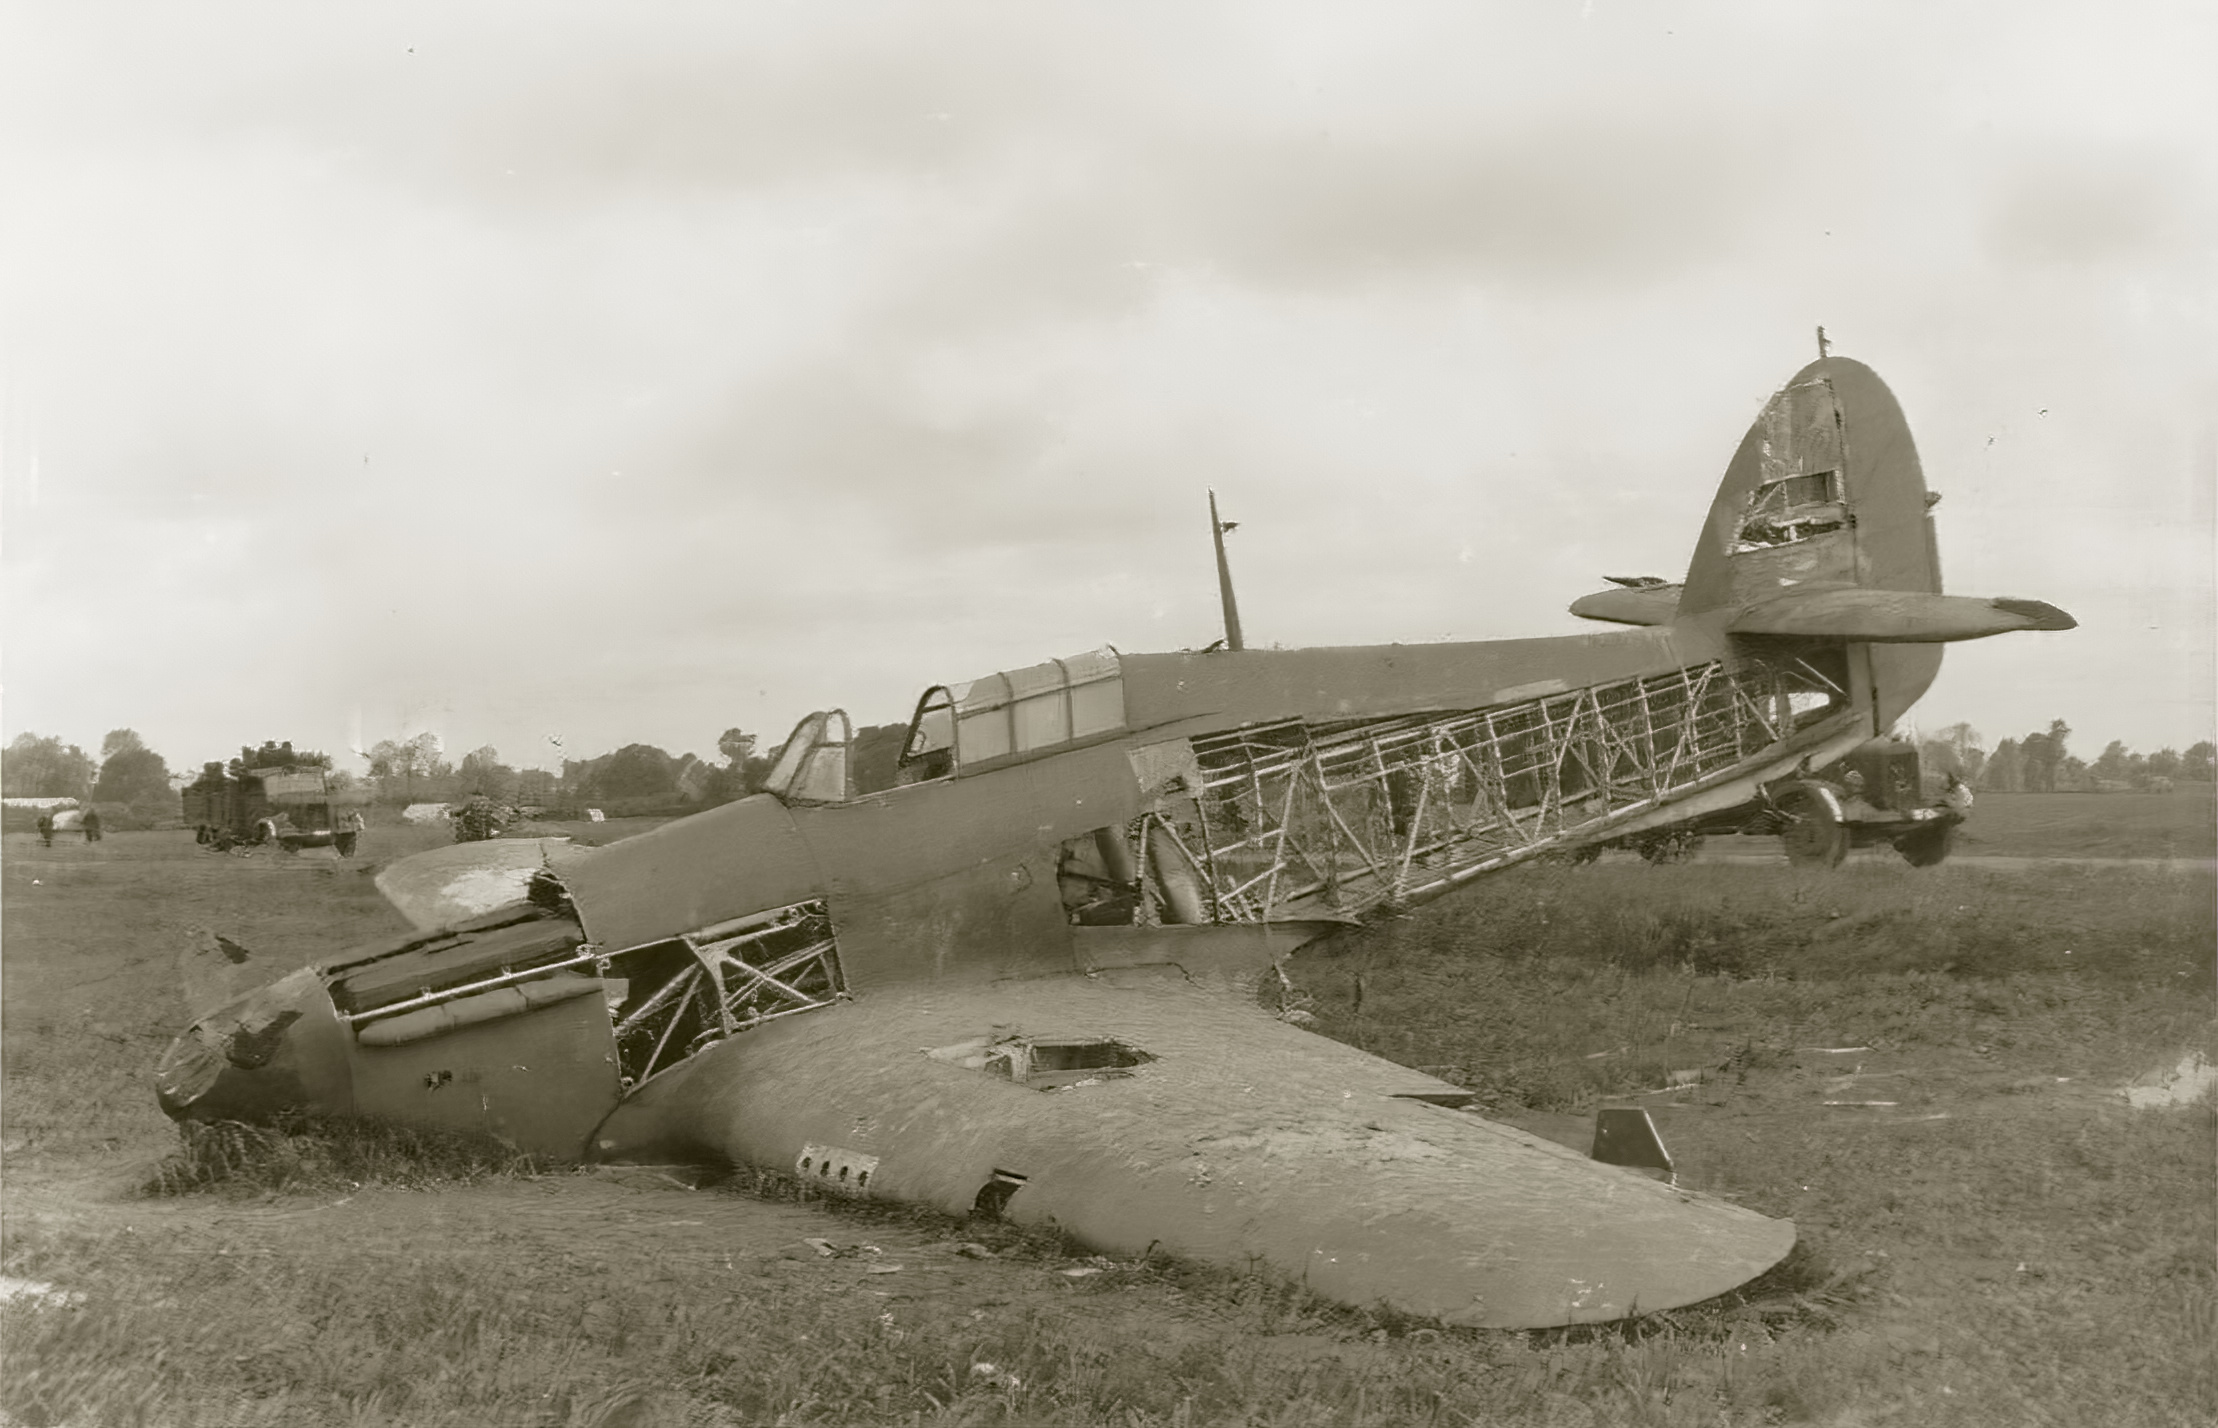 RAF Hurricane force landed stripped by souvenir hunters battle of France May 1940 ebay 01